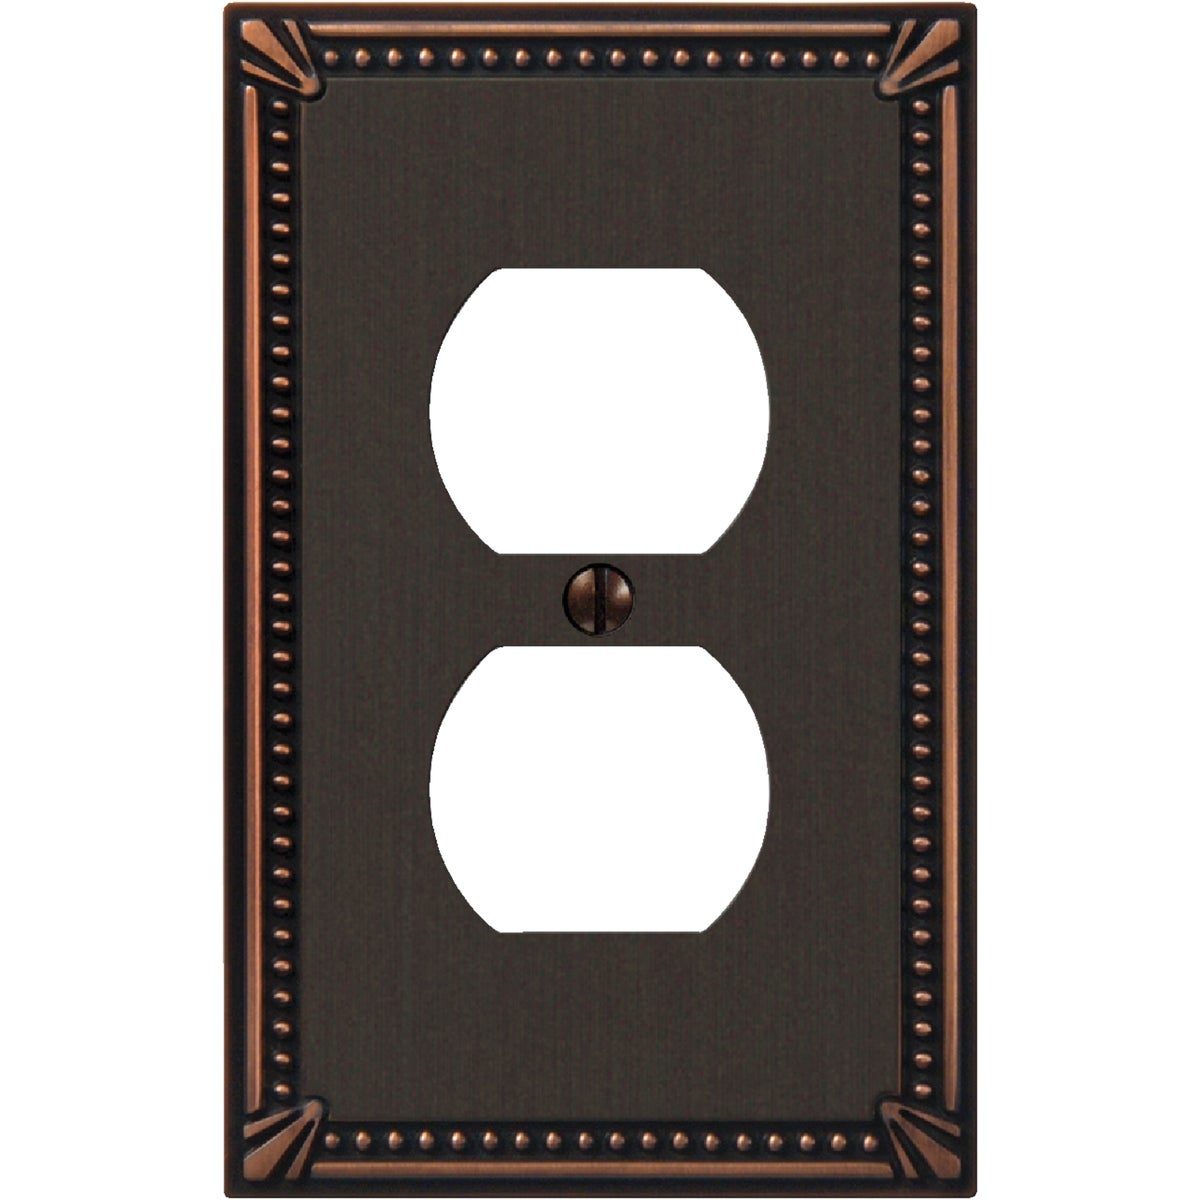 AB OUTLET WALLPLATE - 3008AZ by Jackson Deerfield Mf